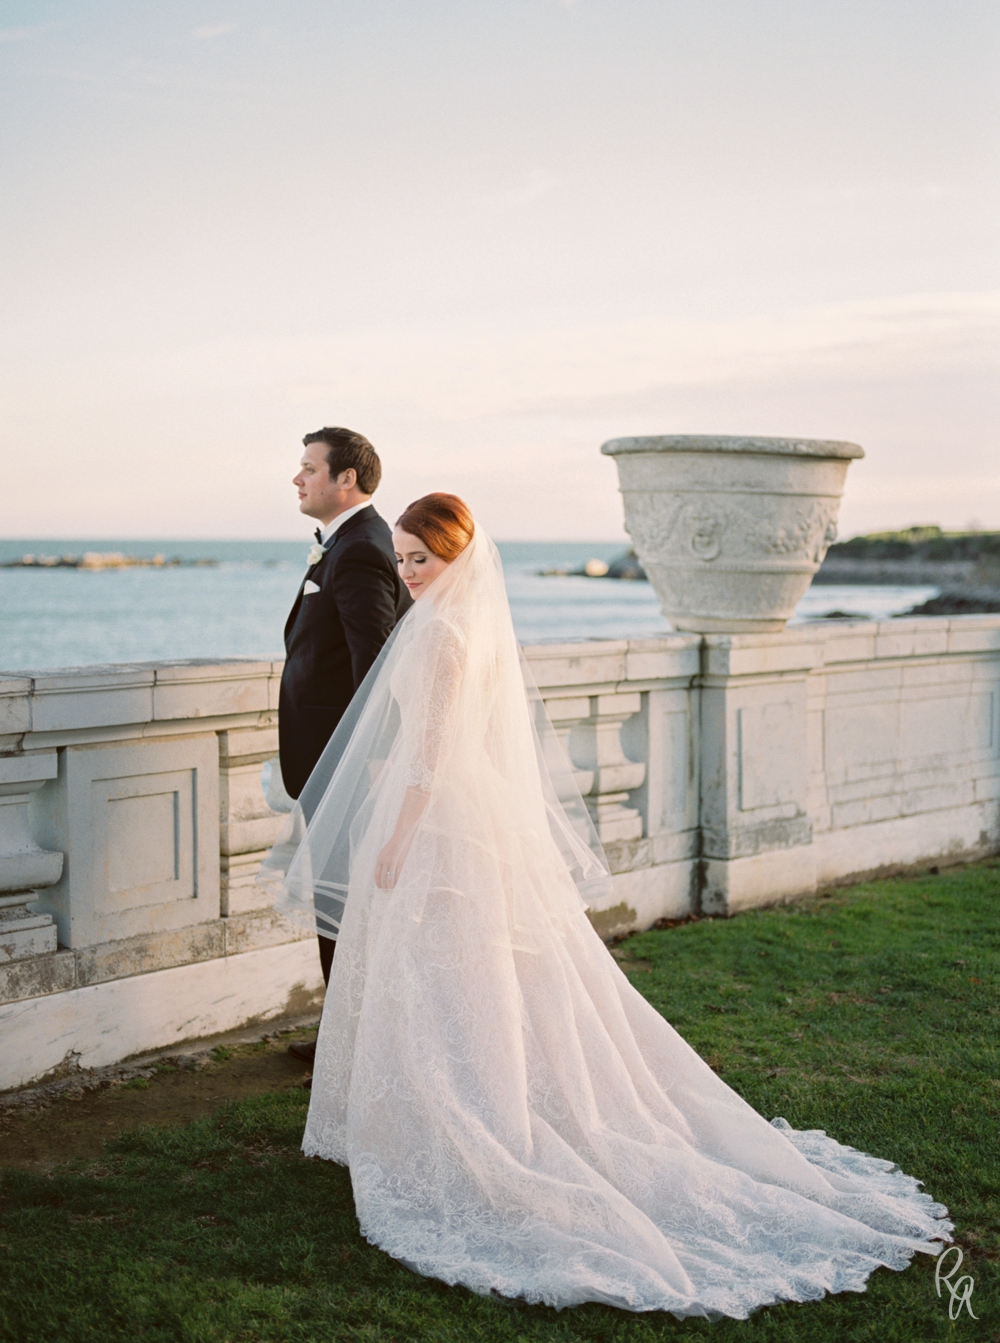 Rosecliff Mansion Fine Art Wedding Photography Newport Rhode Island Shannon Taylor Rebecca Arthurs